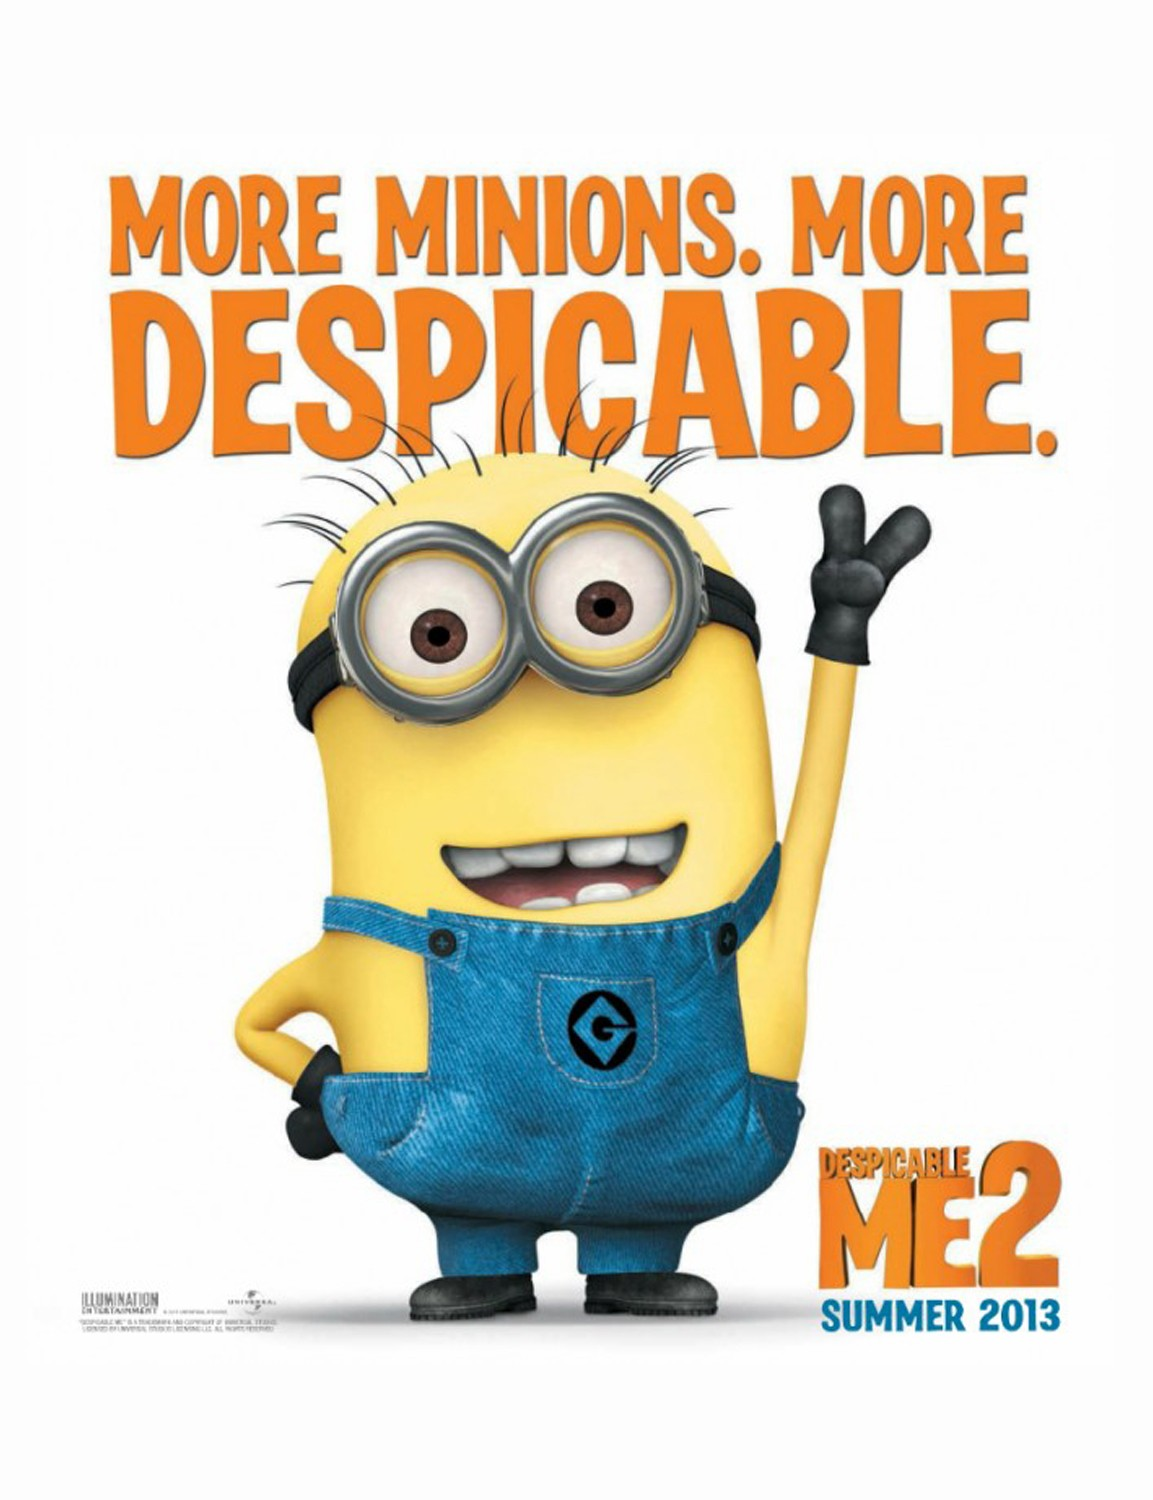 Dispicable                    